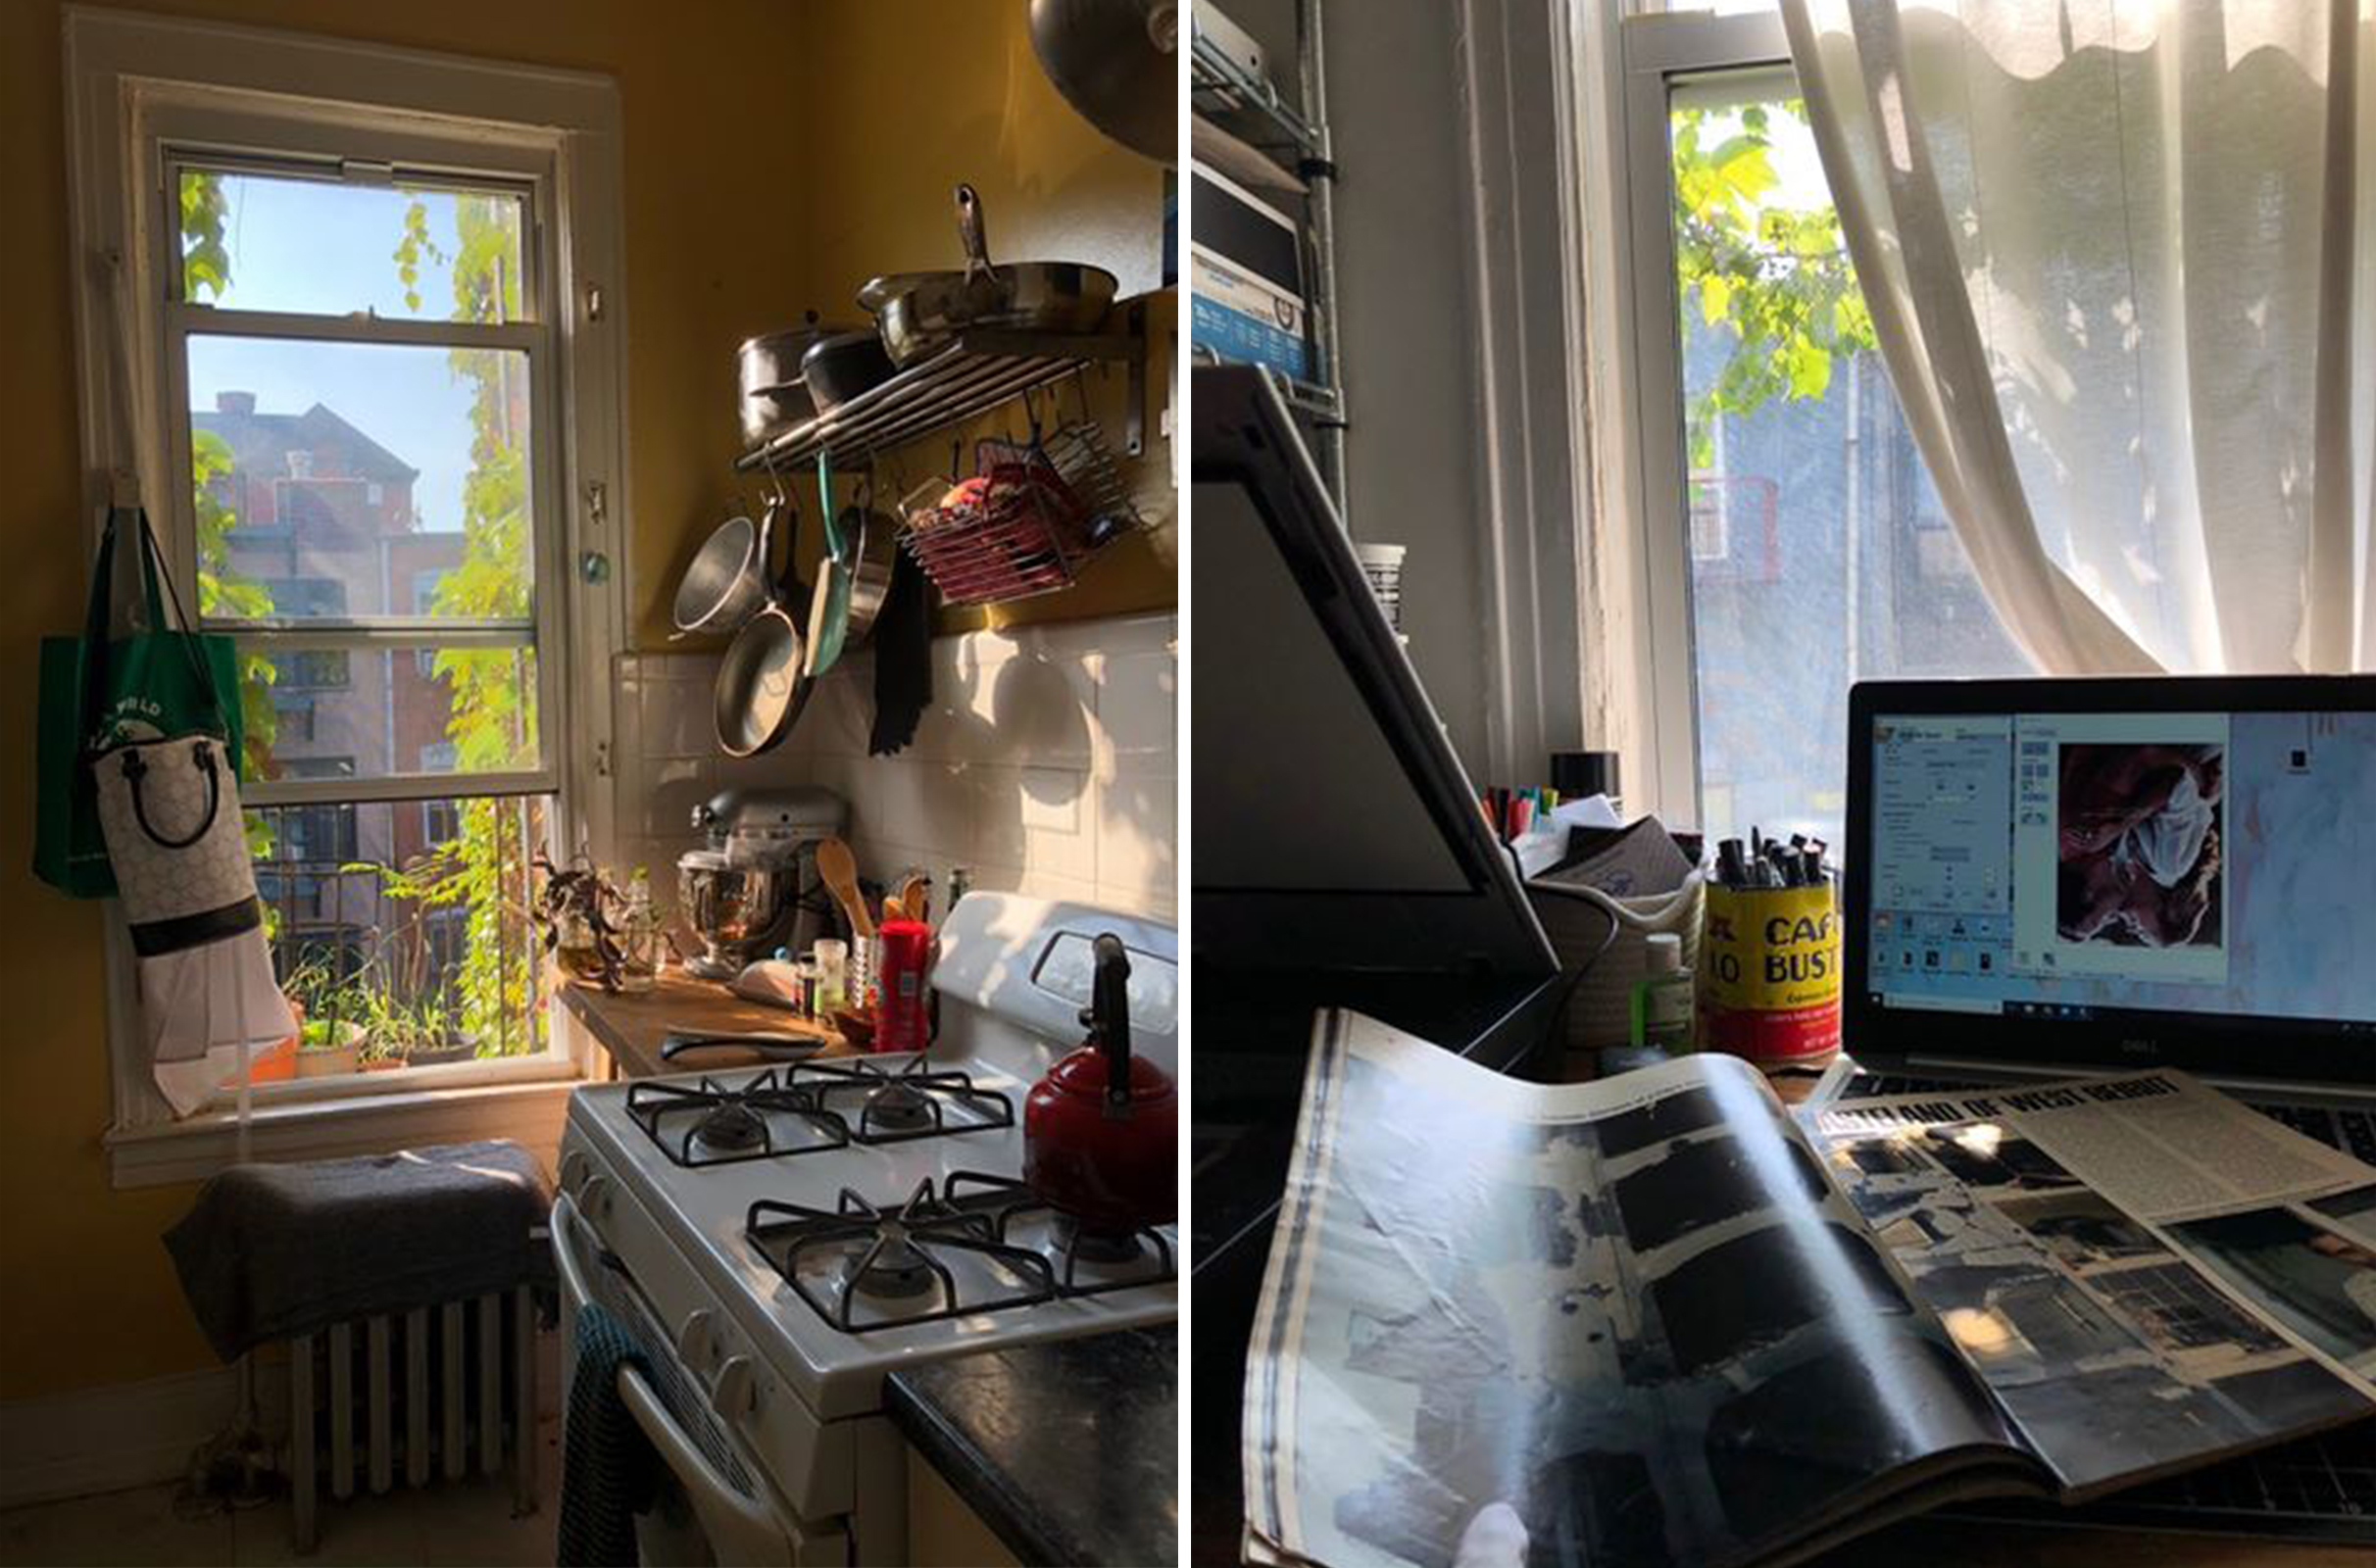 Sydney Ellison, a student at Pratt Institute in New York City, has been living in Brooklyn and studying remotely while classes remain virtual this fall